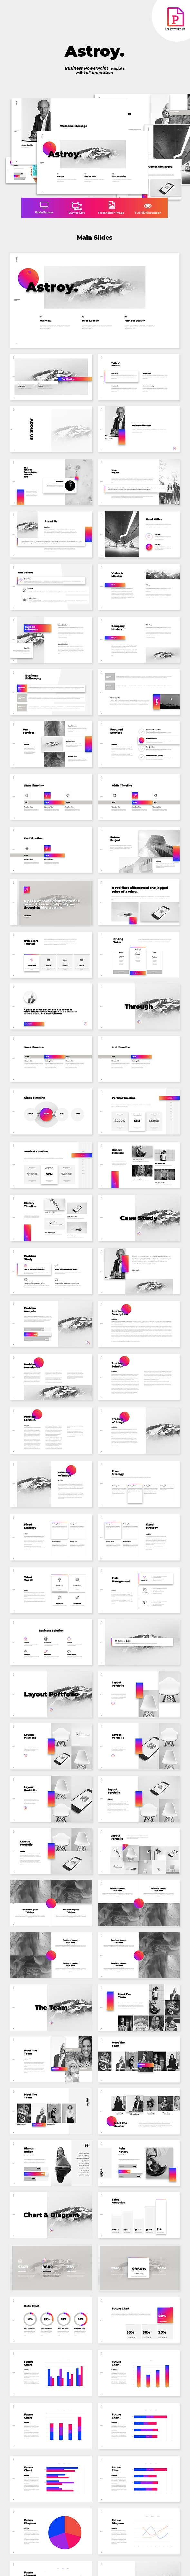 Astroy - Business PowerPoint Template - Business PowerPoint Templates